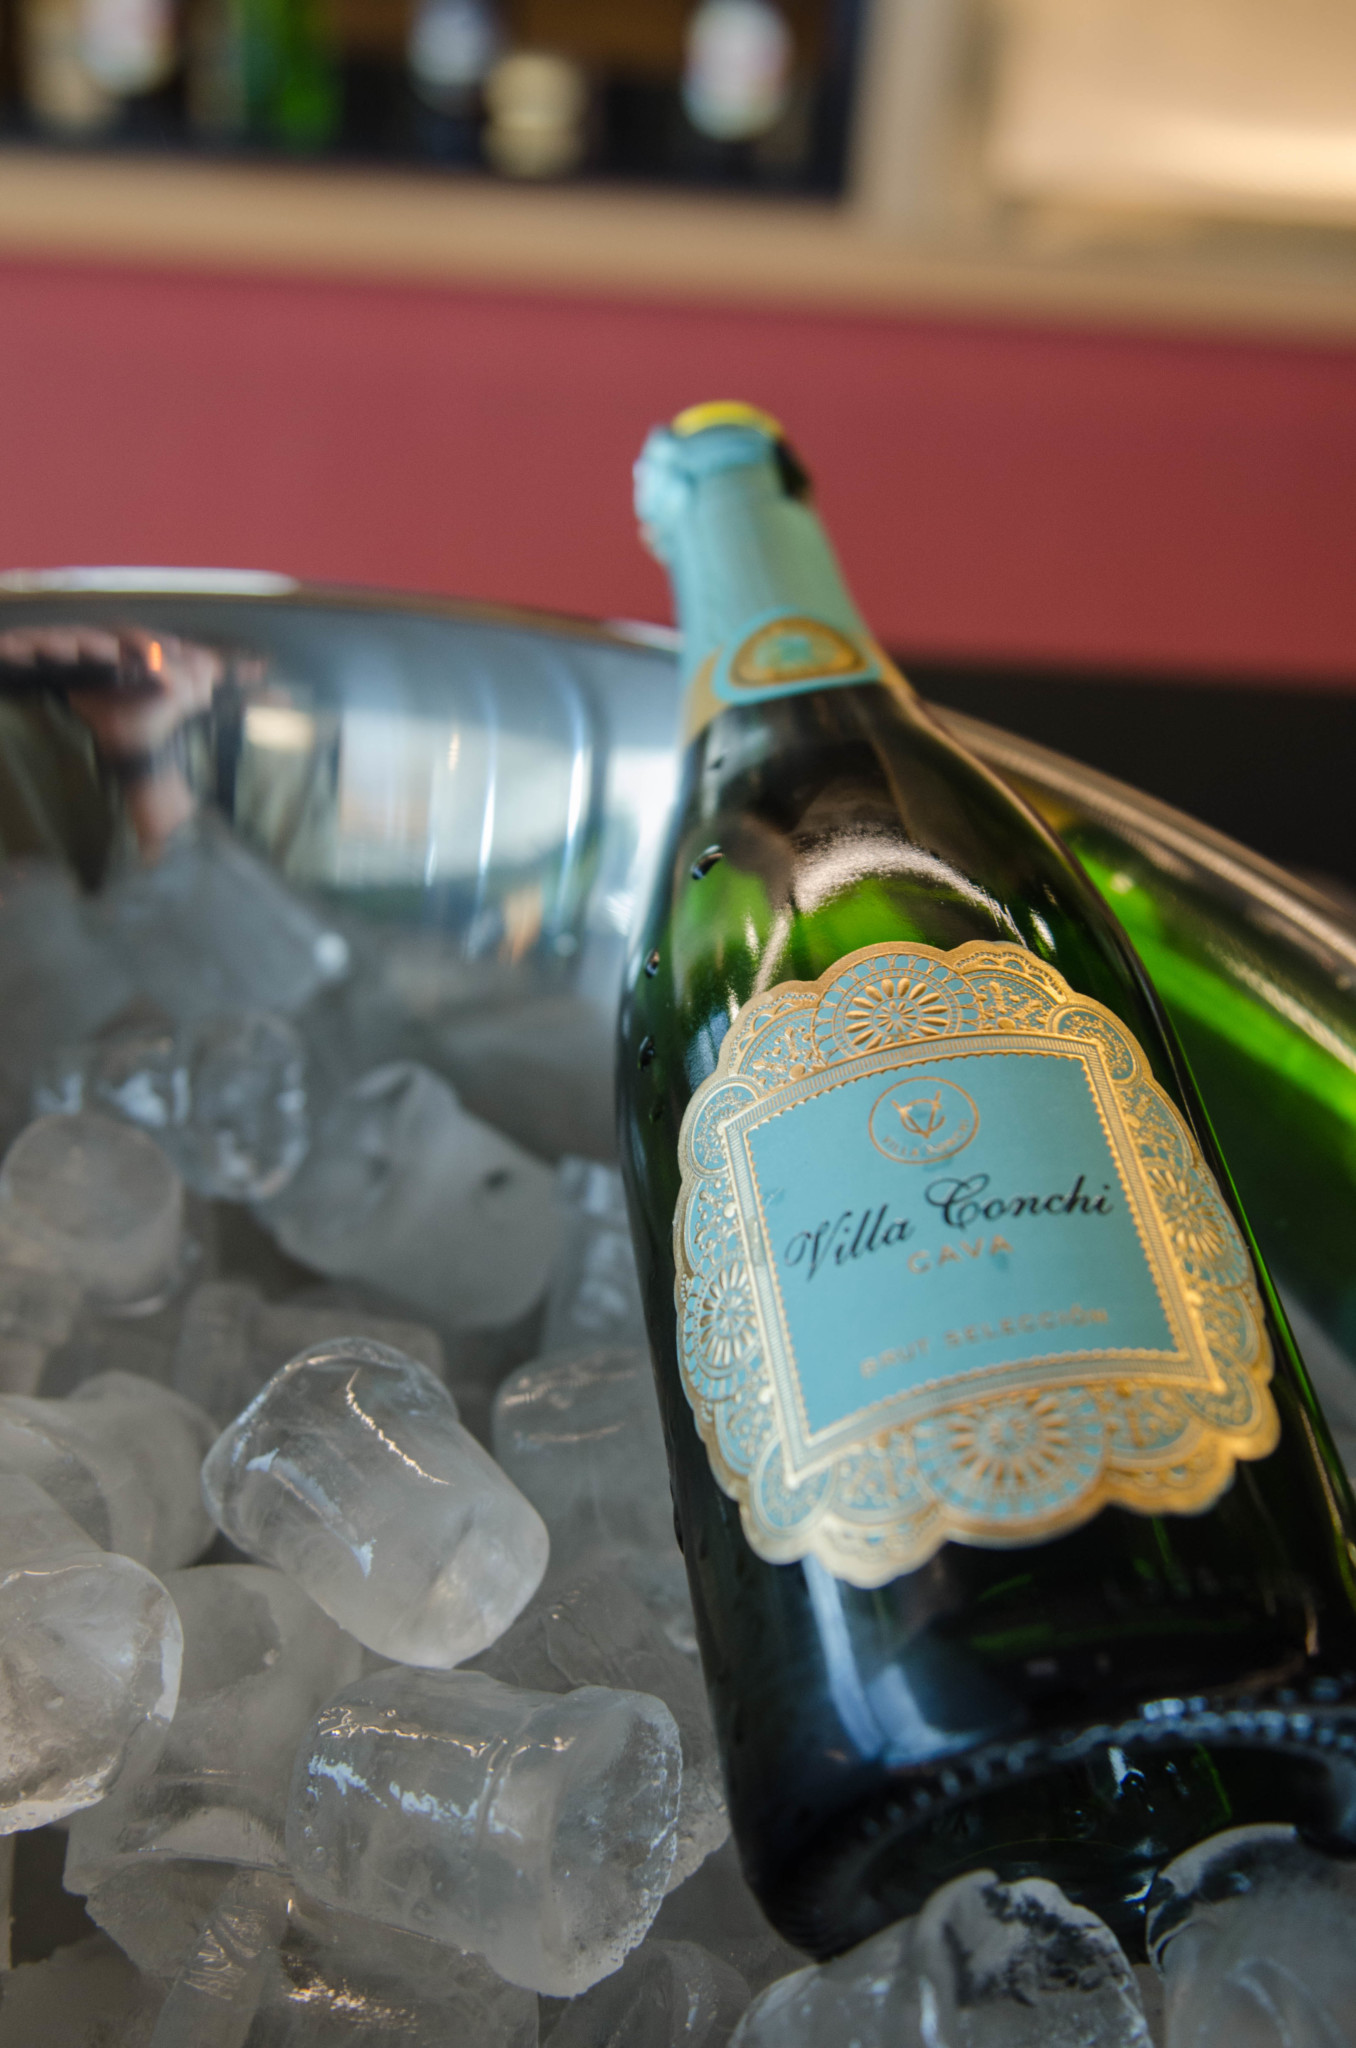 Champagner Iberia Business Lounge